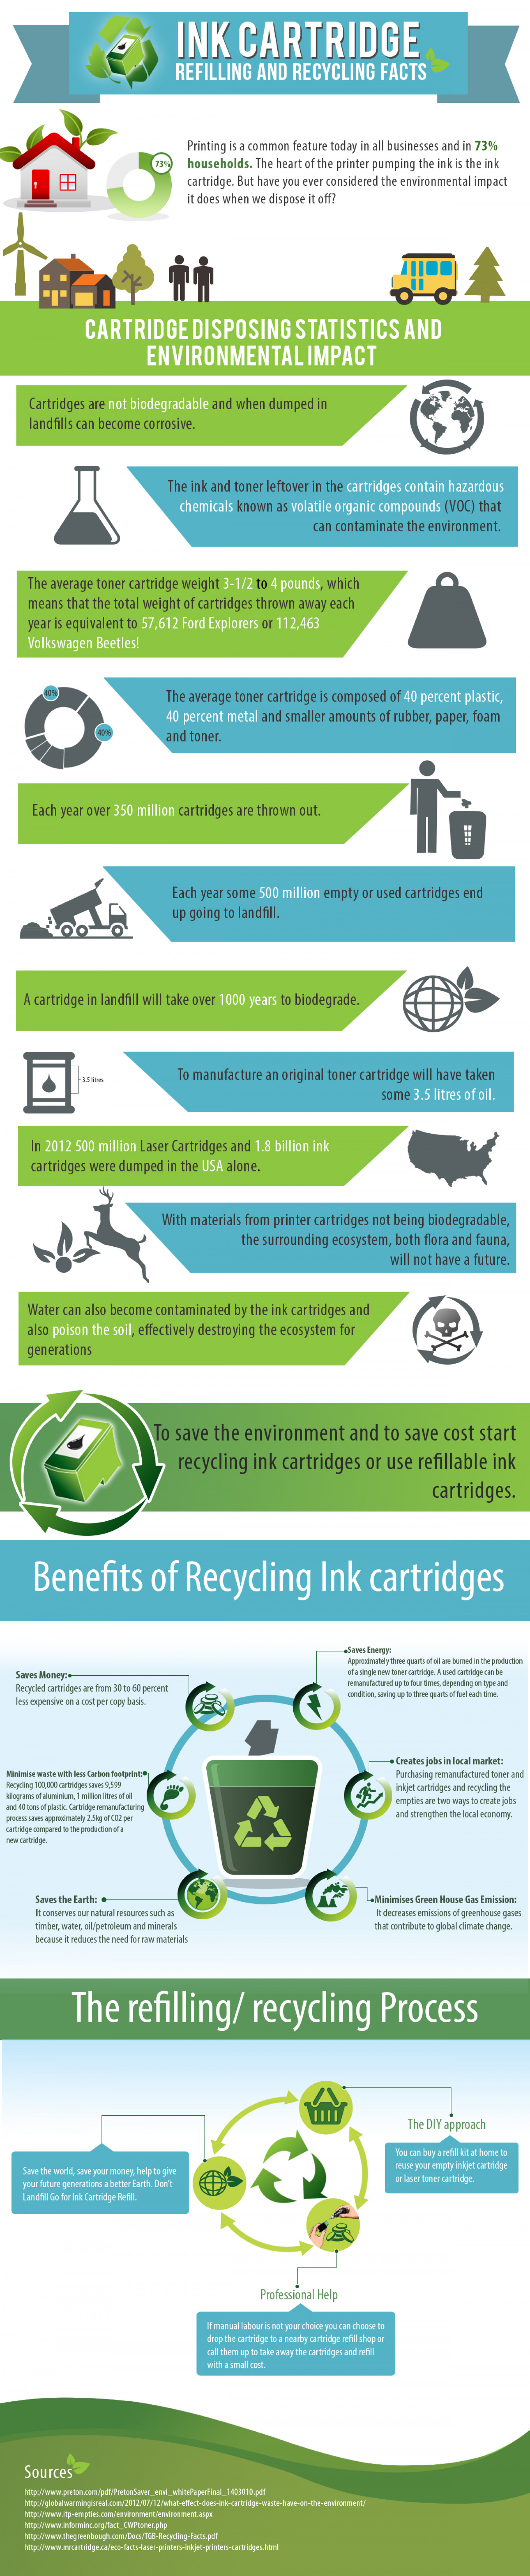 Ink Cartridge: Refilling And Recycling Facts Infographic